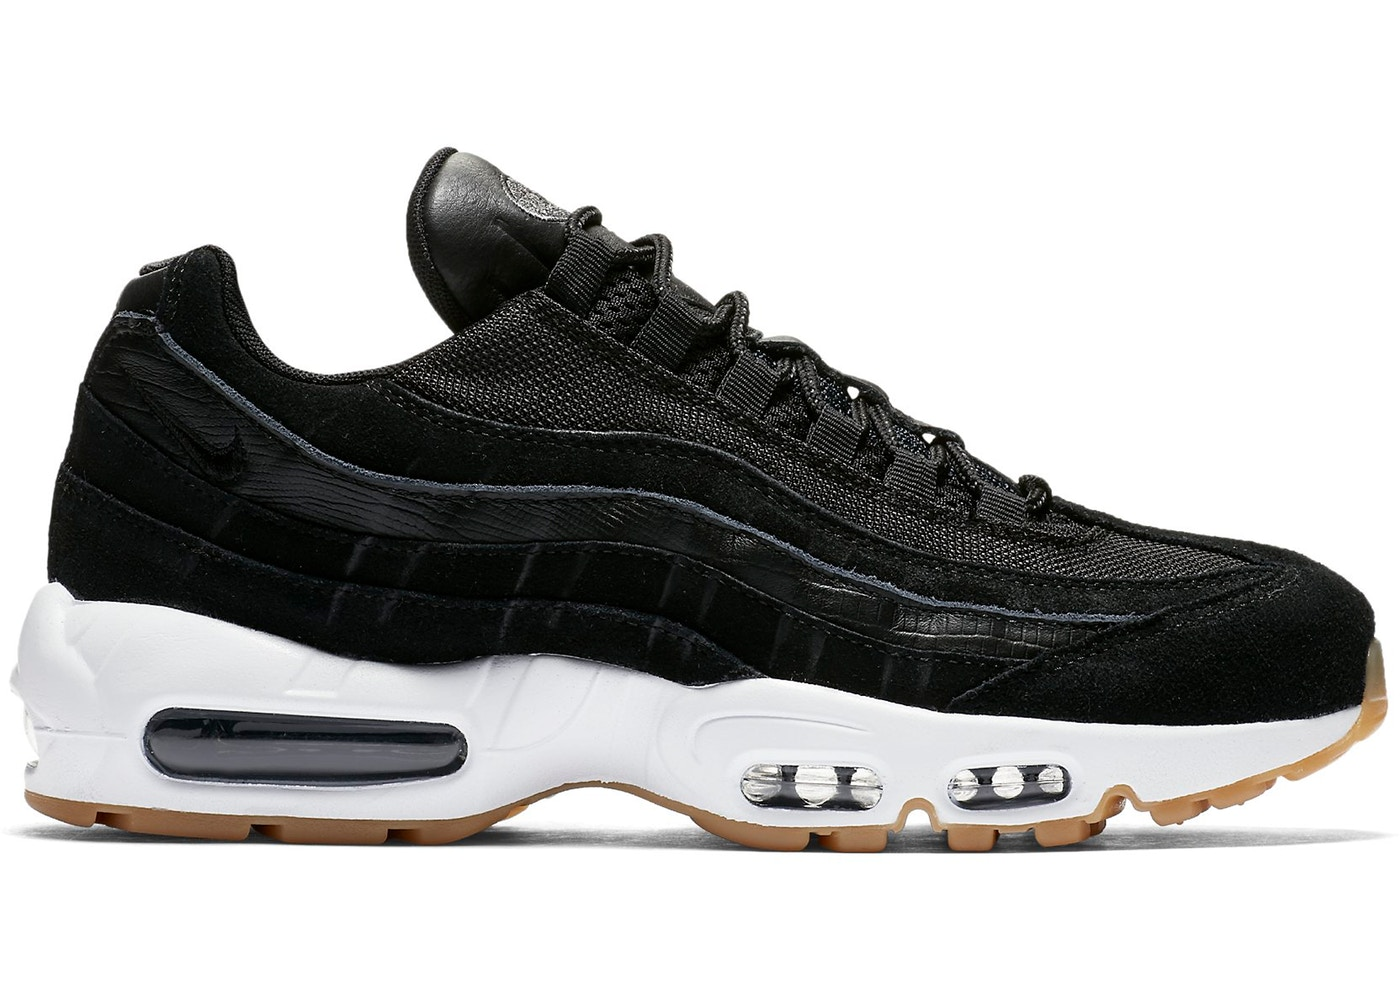 72cbf2ebd6 Sell. or Ask. Size: 15. View All Bids. Air Max 95 Exotic Skins Black Gum